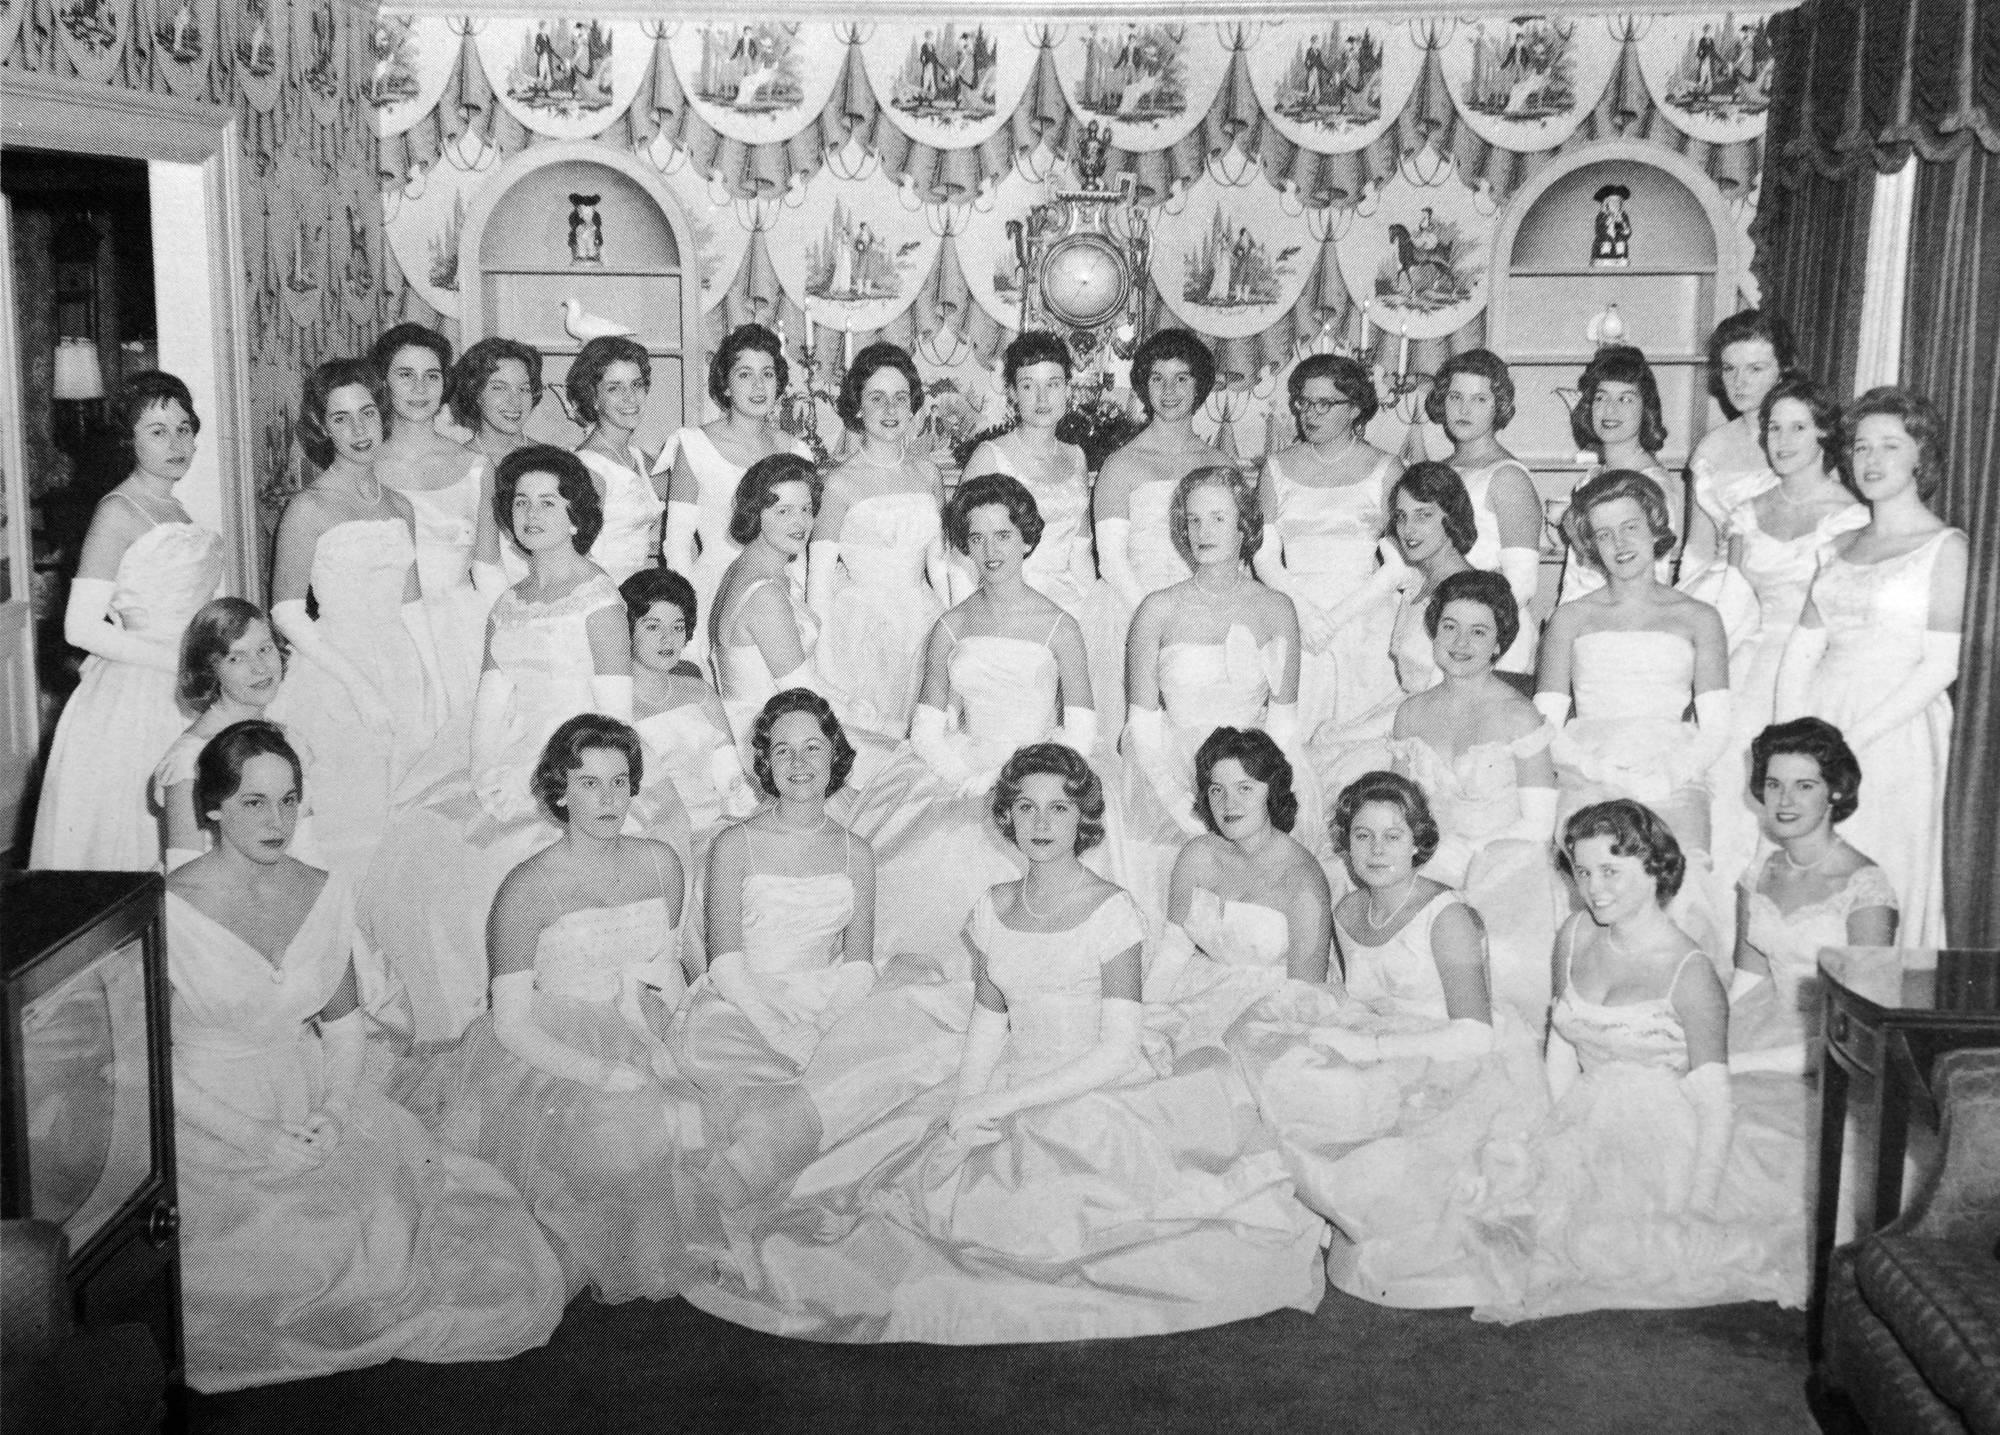 Debutantes from the 1960 Cinderella Ball. (Cinderella Ball Committee Records, MSS 1109, Detre Library & Archives, Heinz History Center)